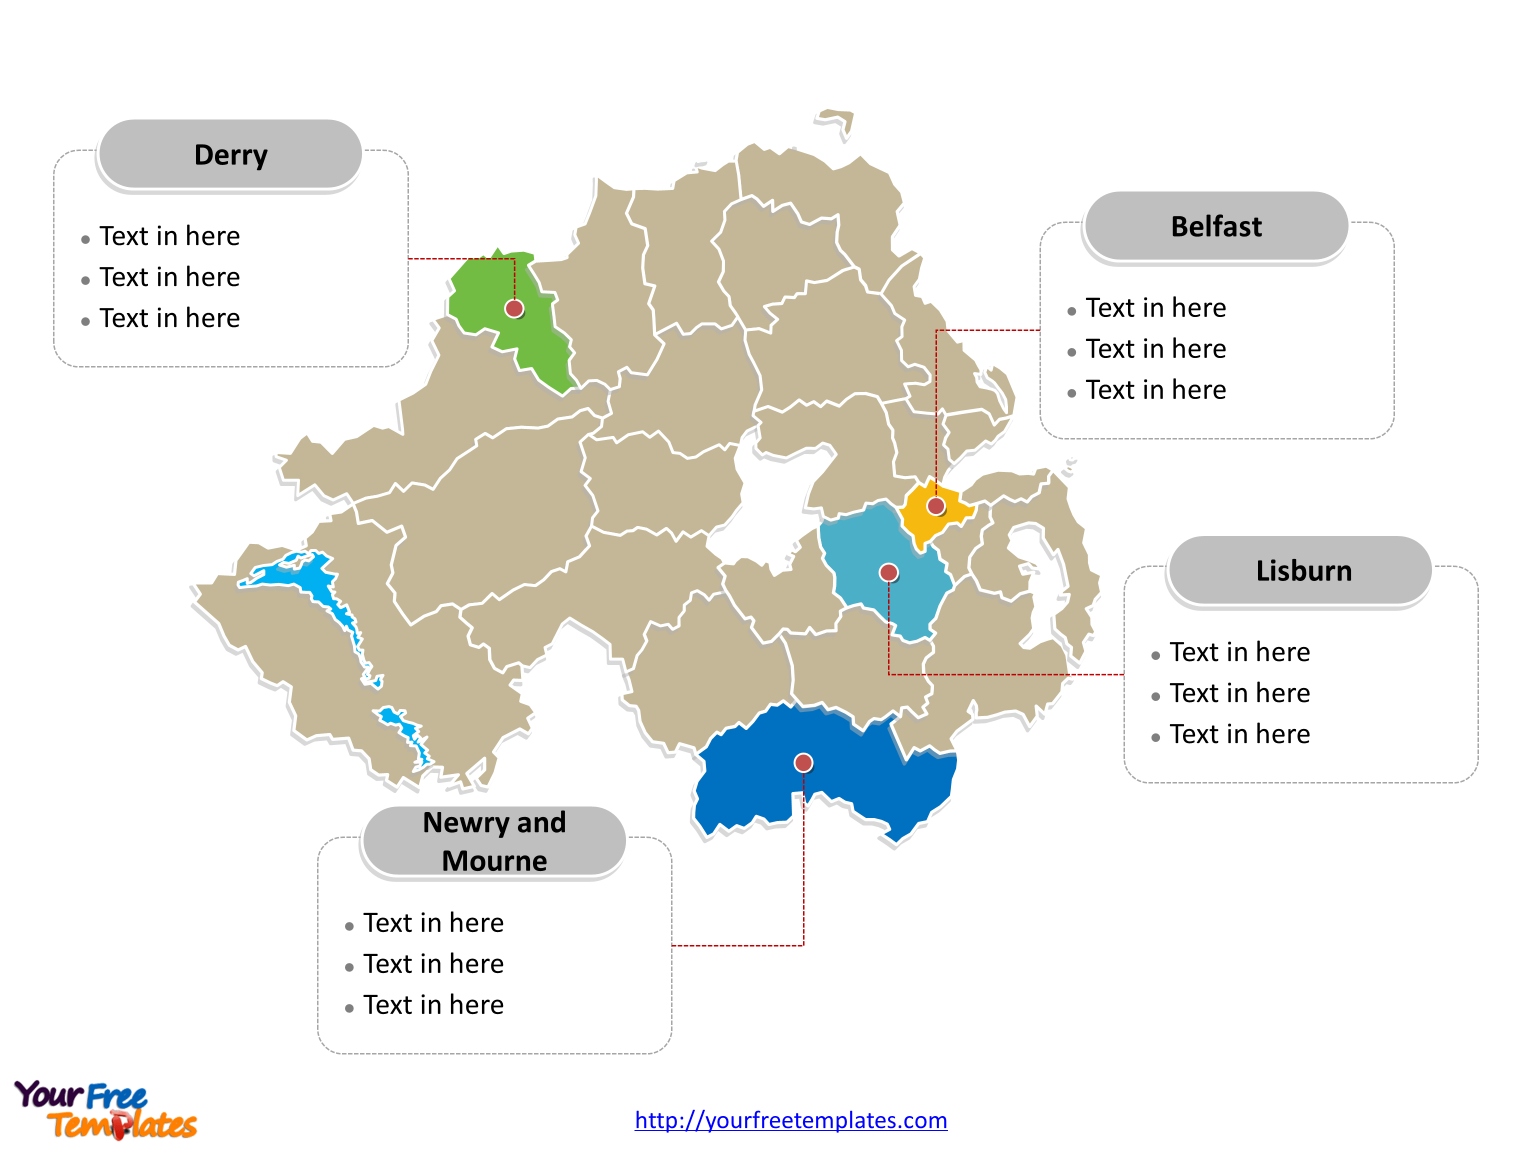 Northern Ireland Political map labeled with major districts